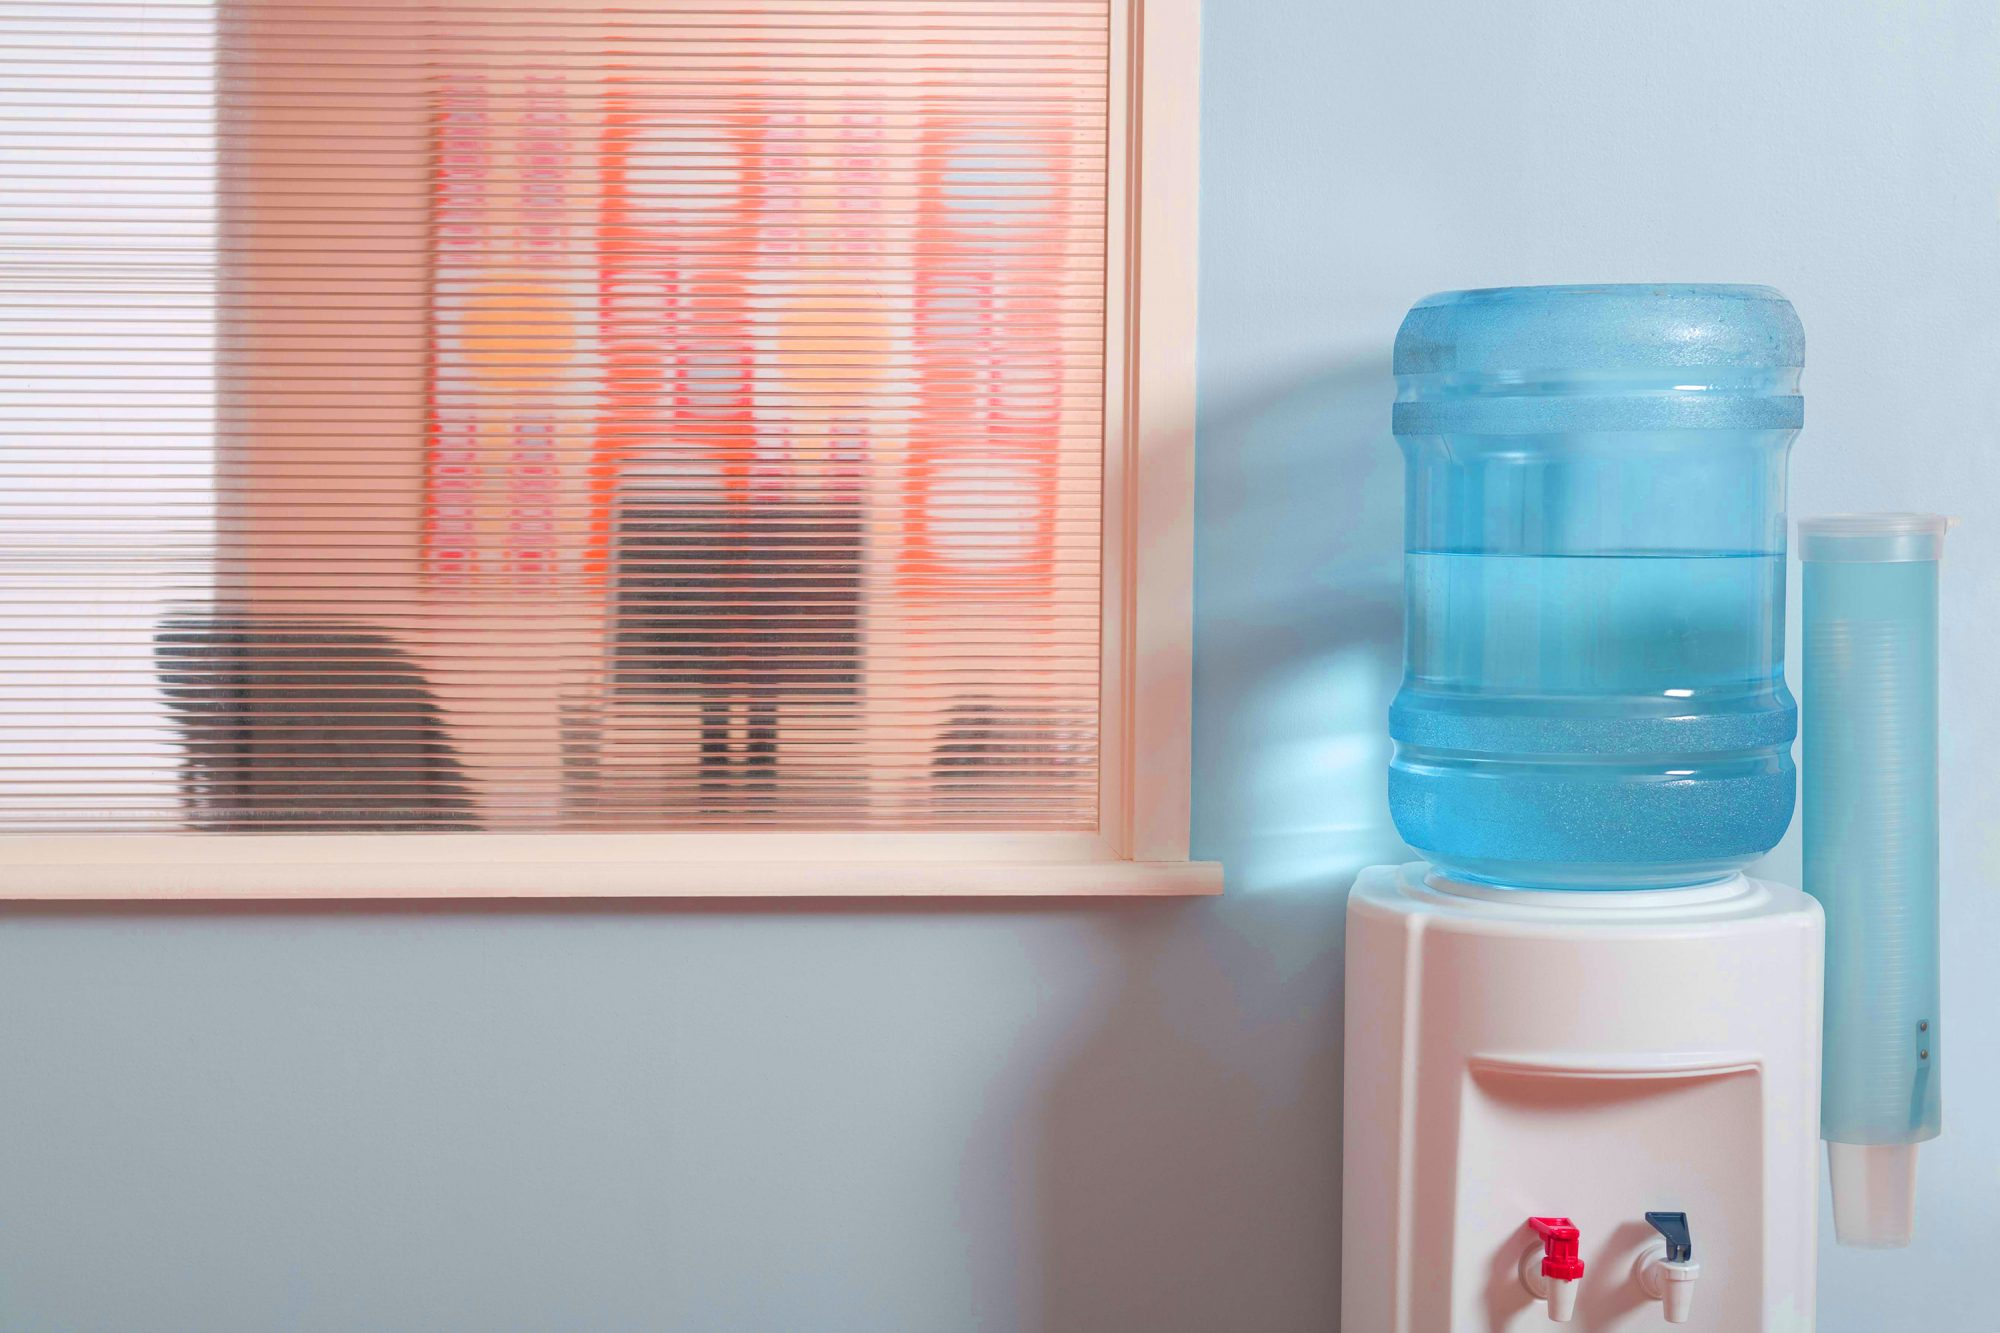 How to Deal with Social Anxiety at Work: close-up image of office water cooler